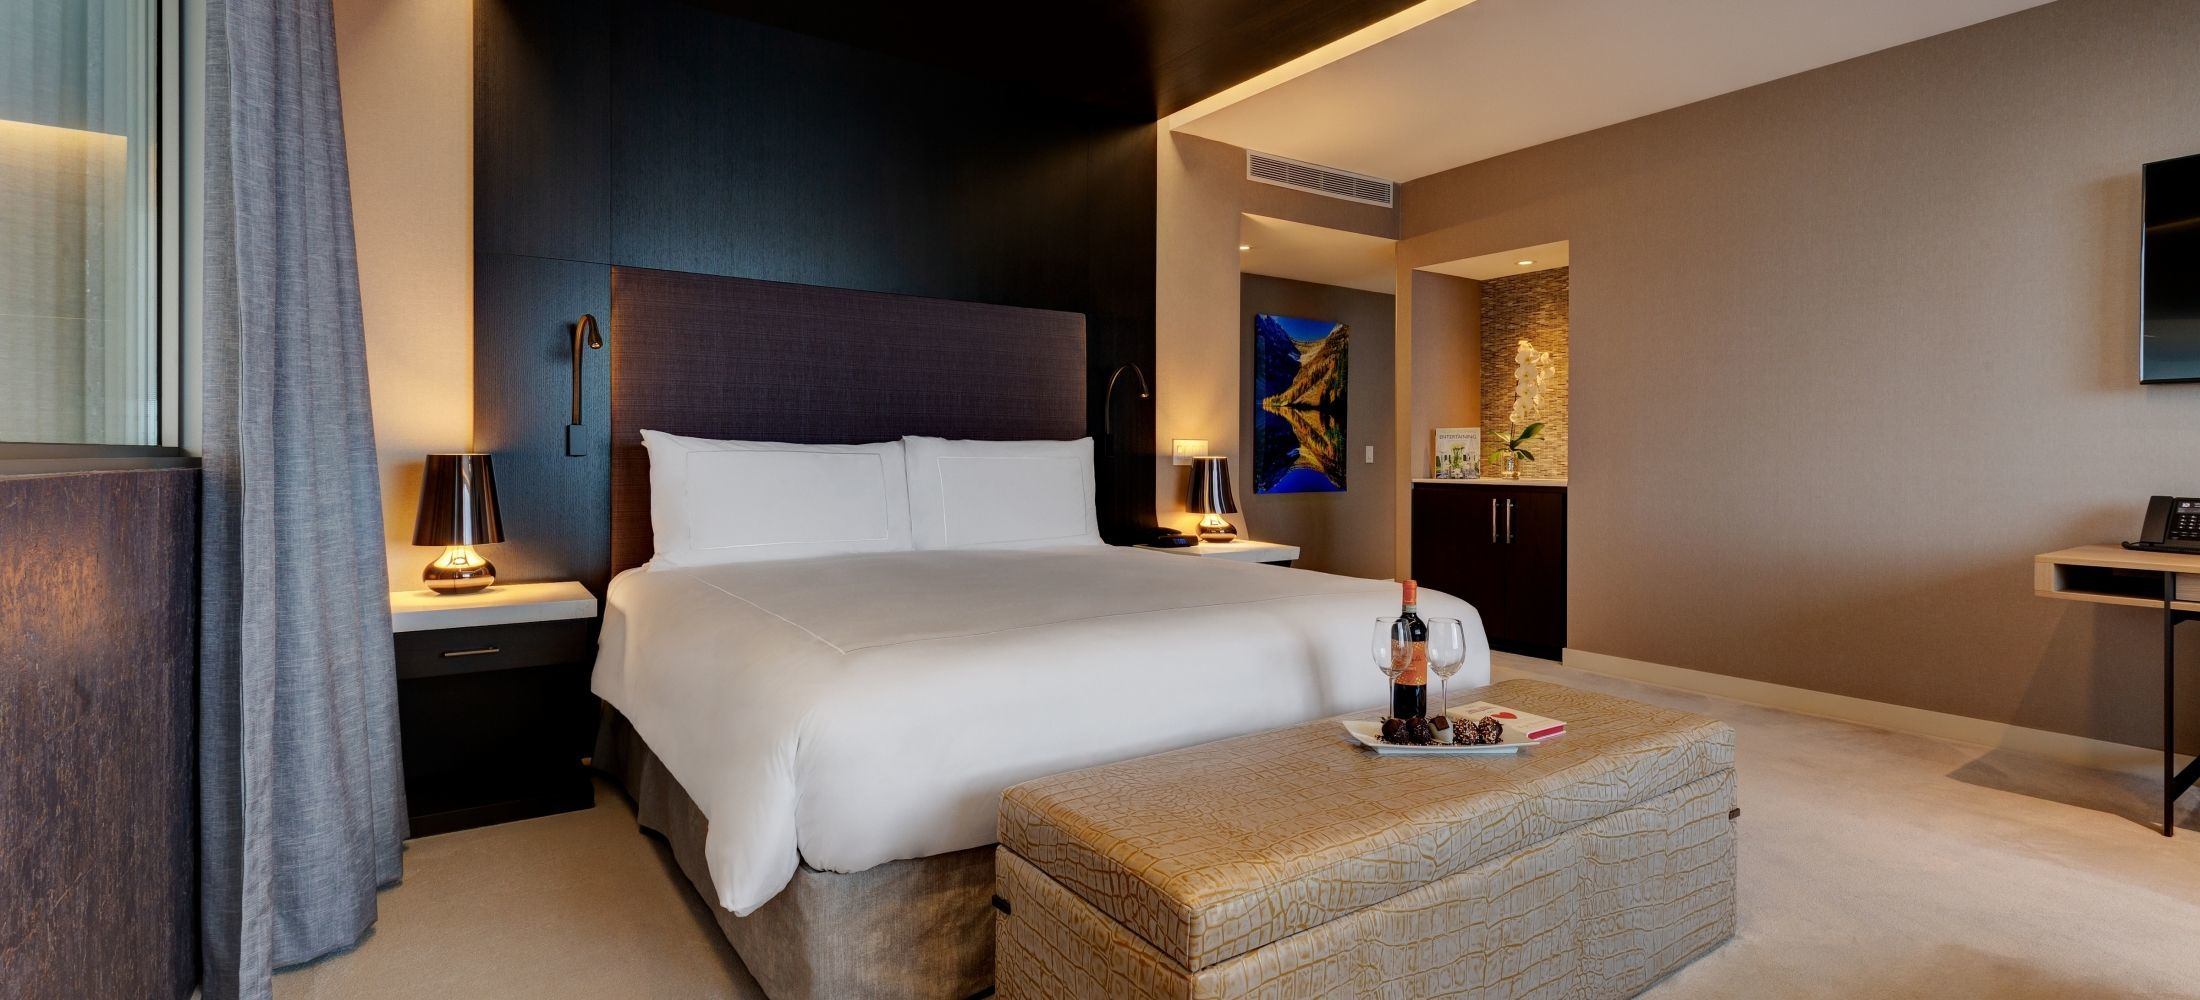 Multiple room suites with customizable combinations are available to guests to choose from.